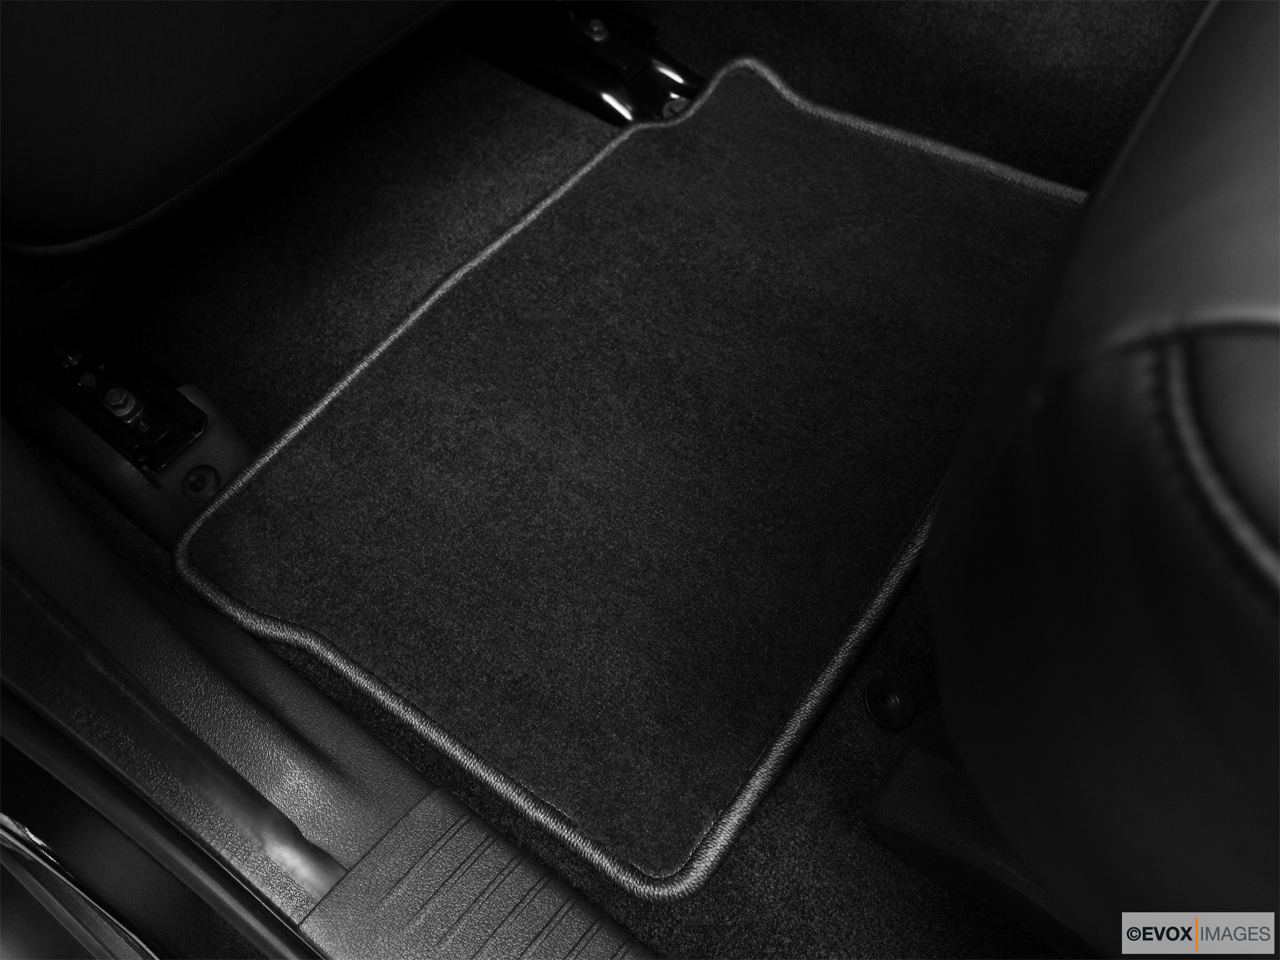 2010 Jeep Commander Limited Rear driver's side floor mat. Mid-seat level from outside looking in.